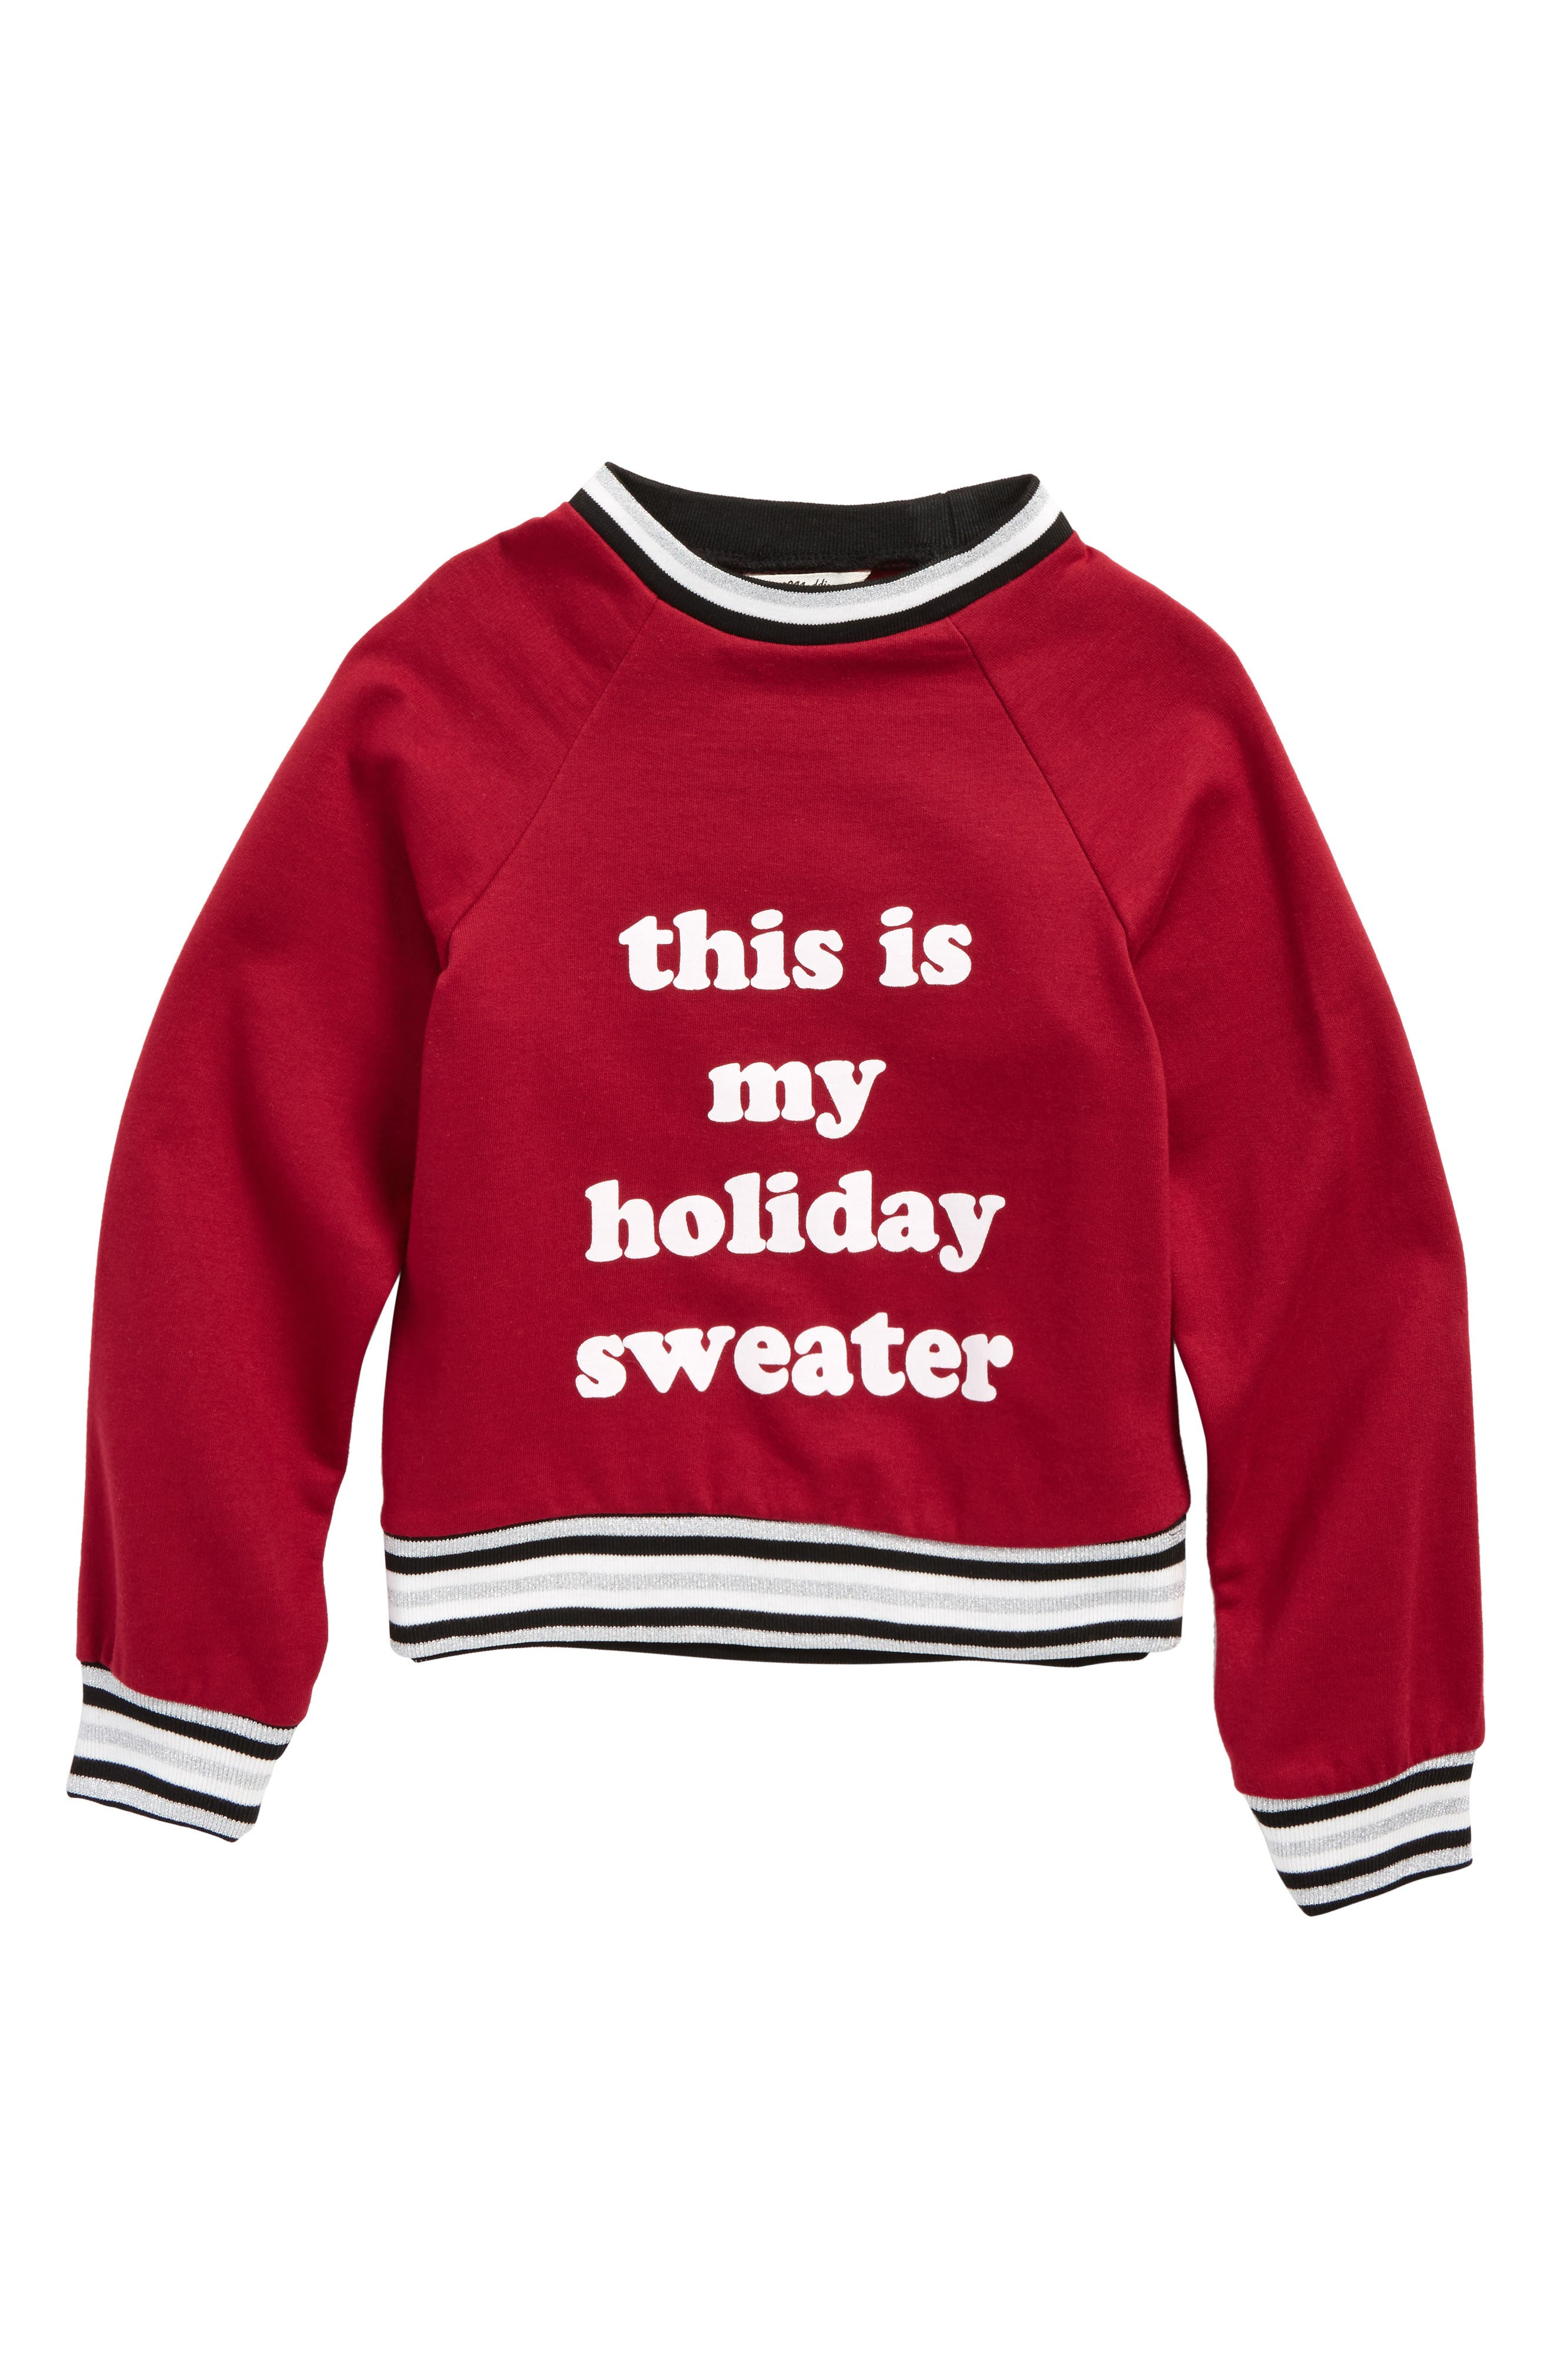 This Is My Holiday Sweater Graphic Sweatshirt,                             Main thumbnail 1, color,                             Burgundy